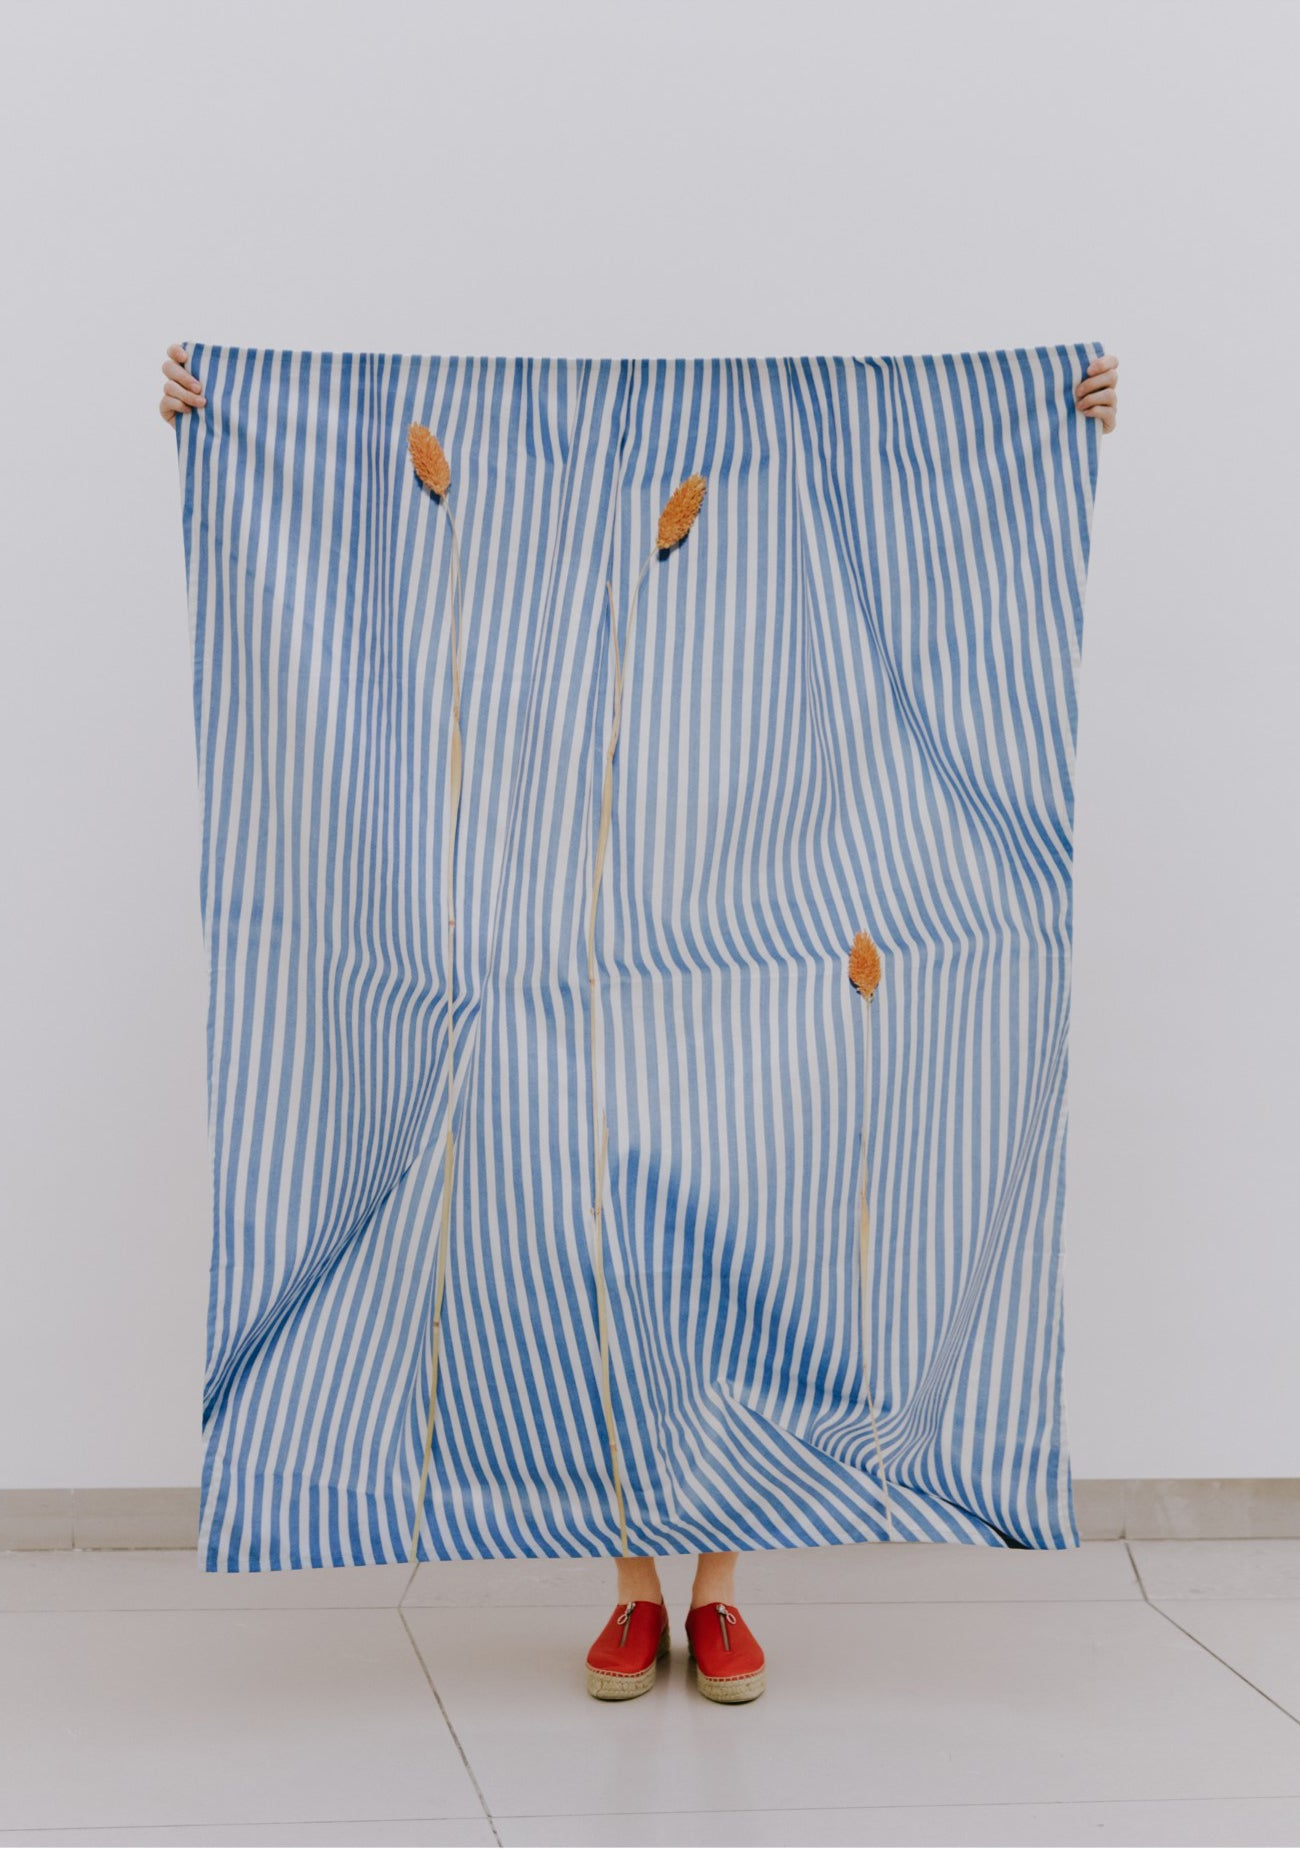 Annette Kelm | Straws and Stripes | Towel